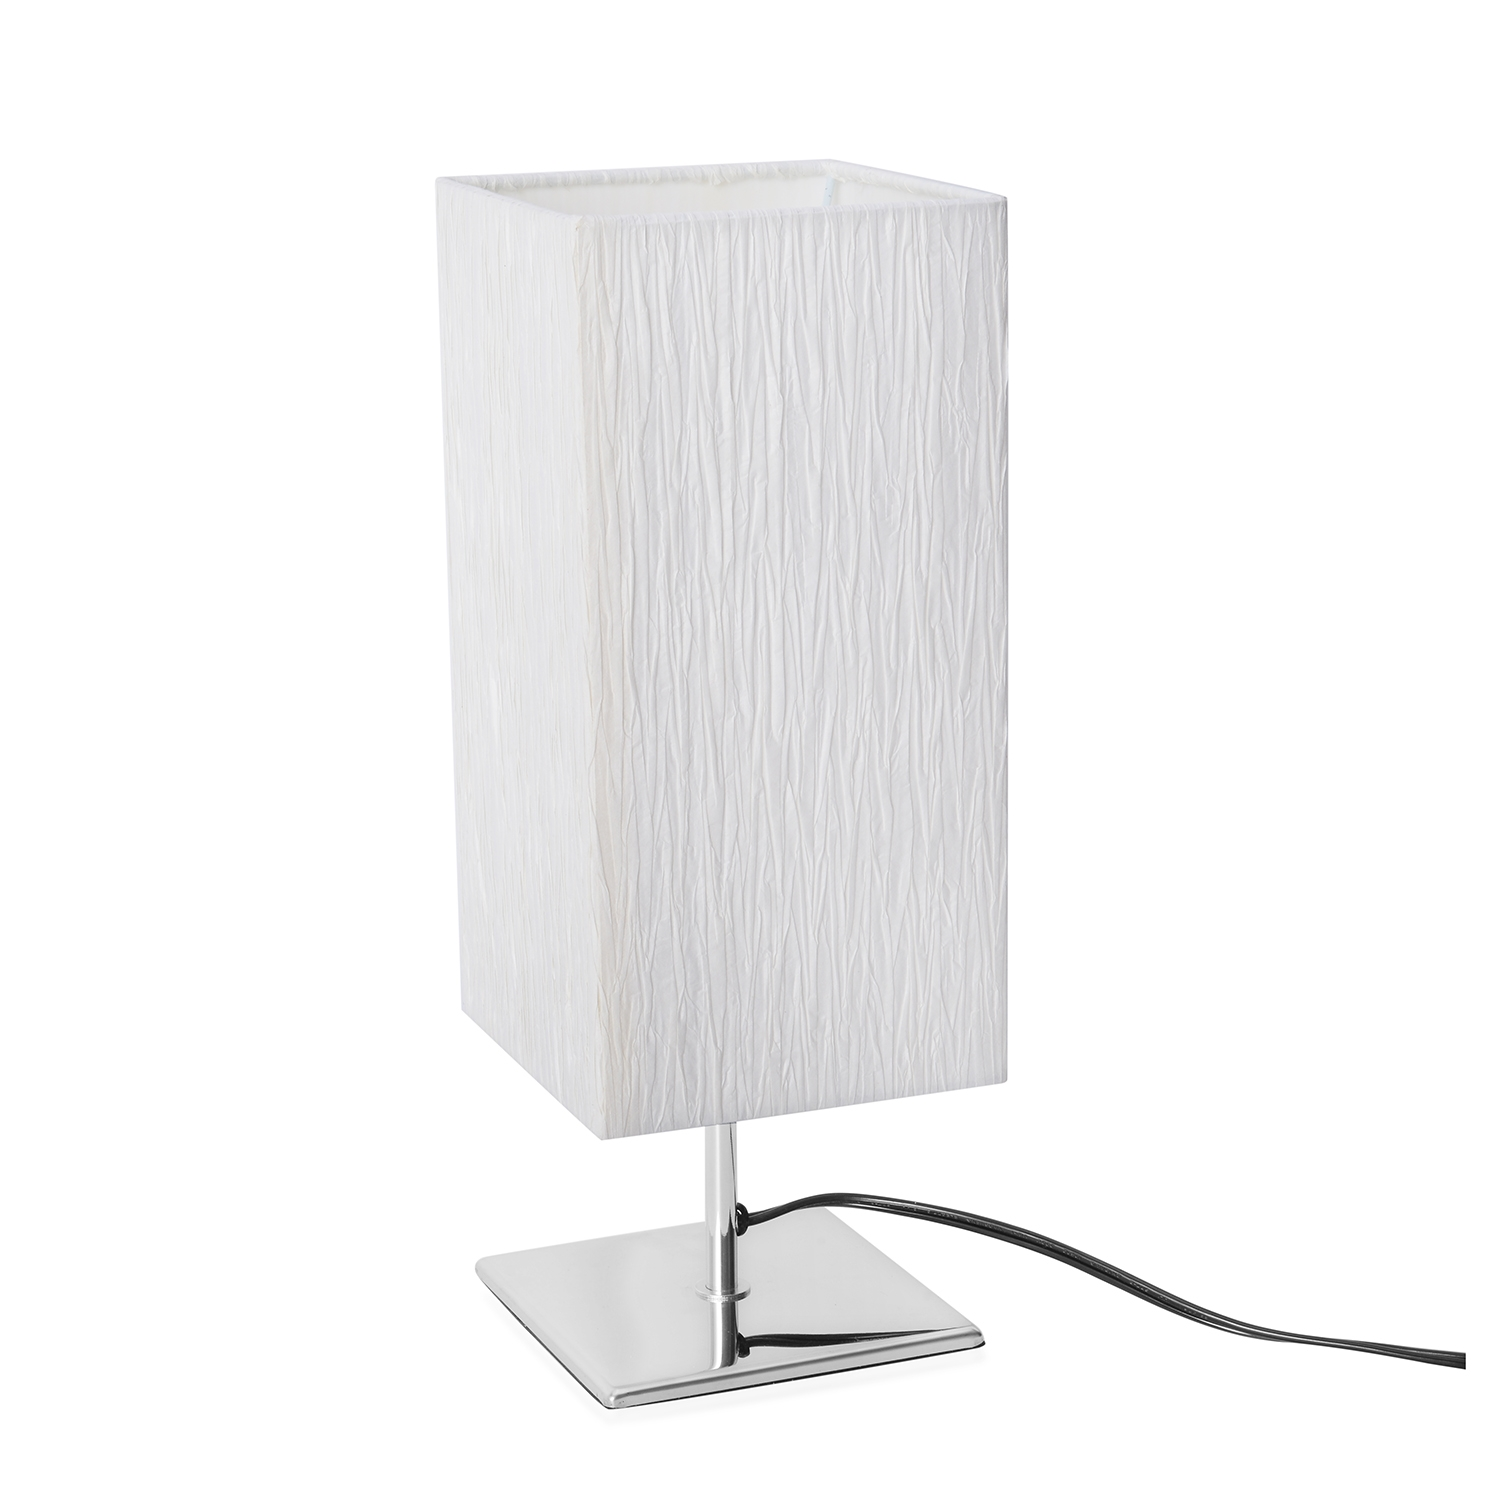 White Base Floor Lamp White Square Floor Lamp 40w Voltage 110 120v 50 60hz